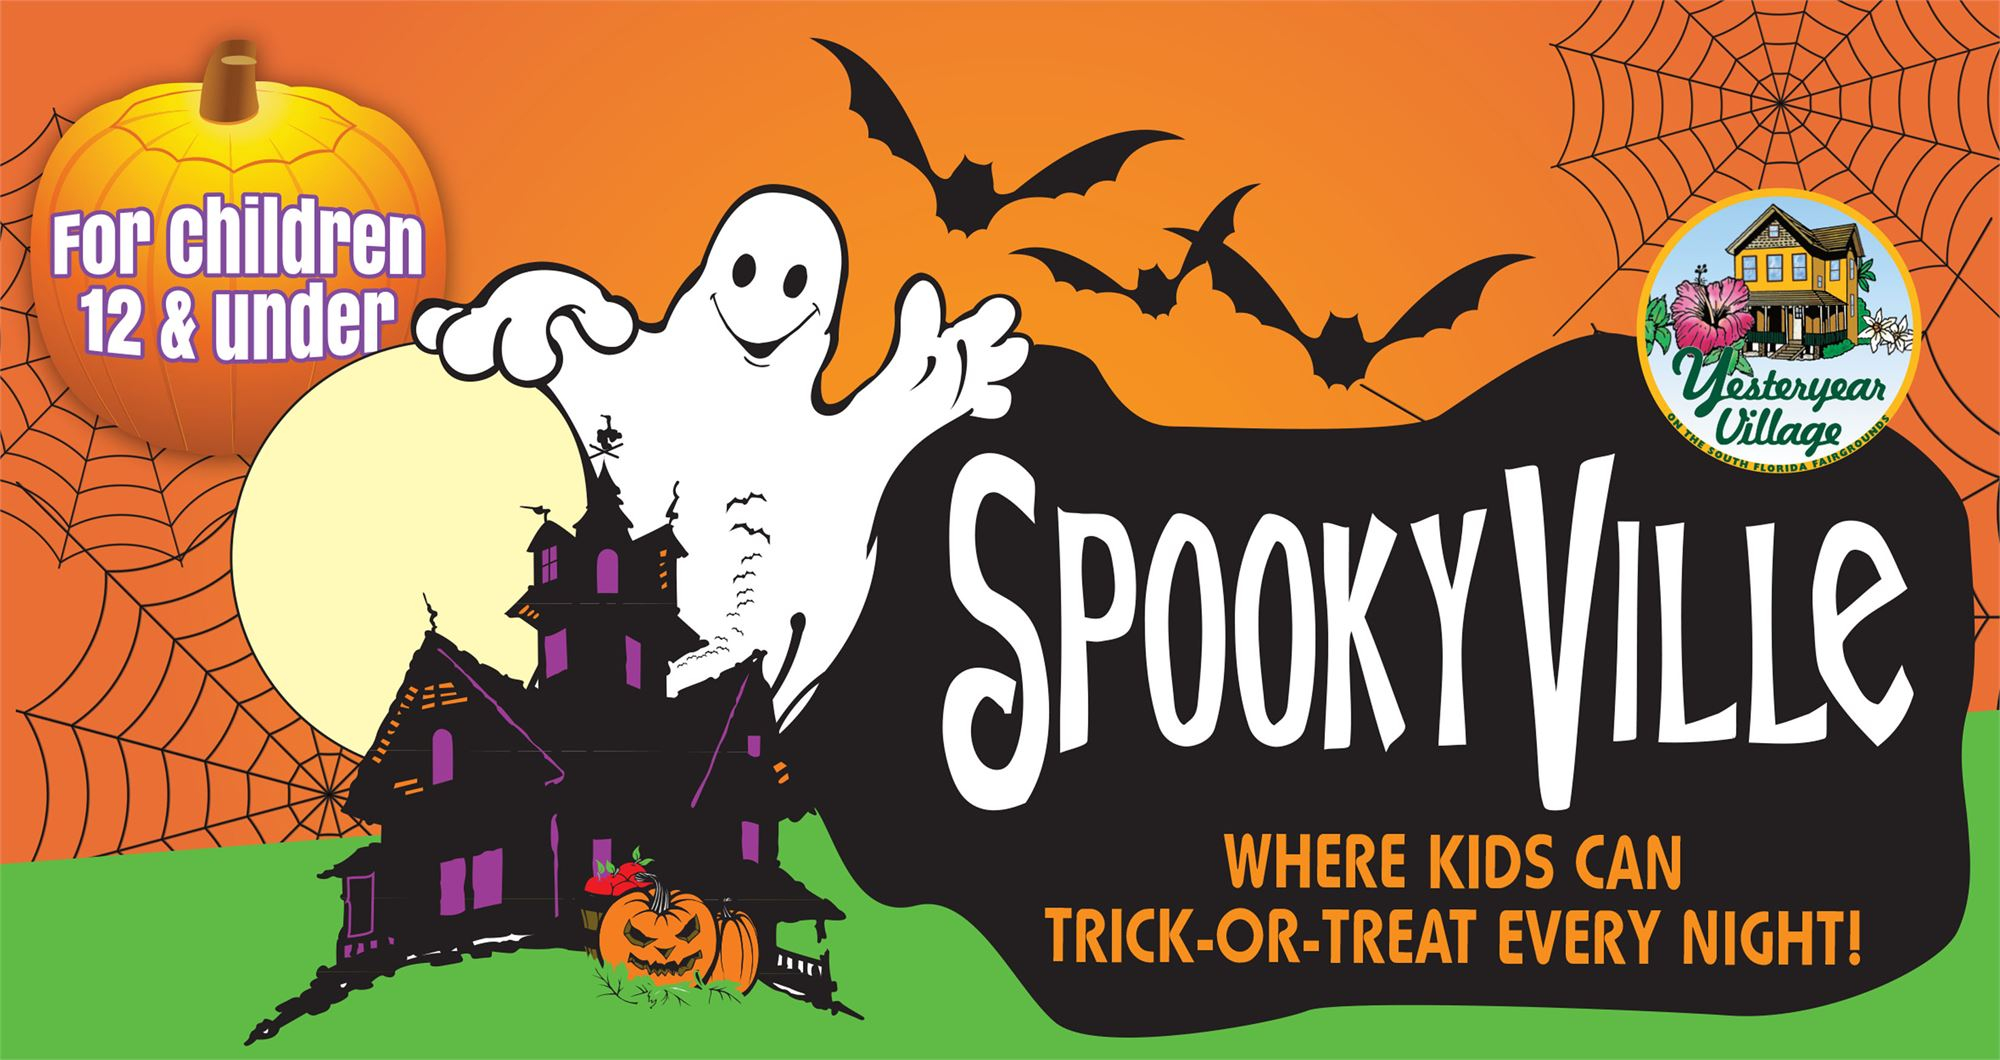 Spookyville In Yesteryear Village Inside South Florida Fairgrounds Events